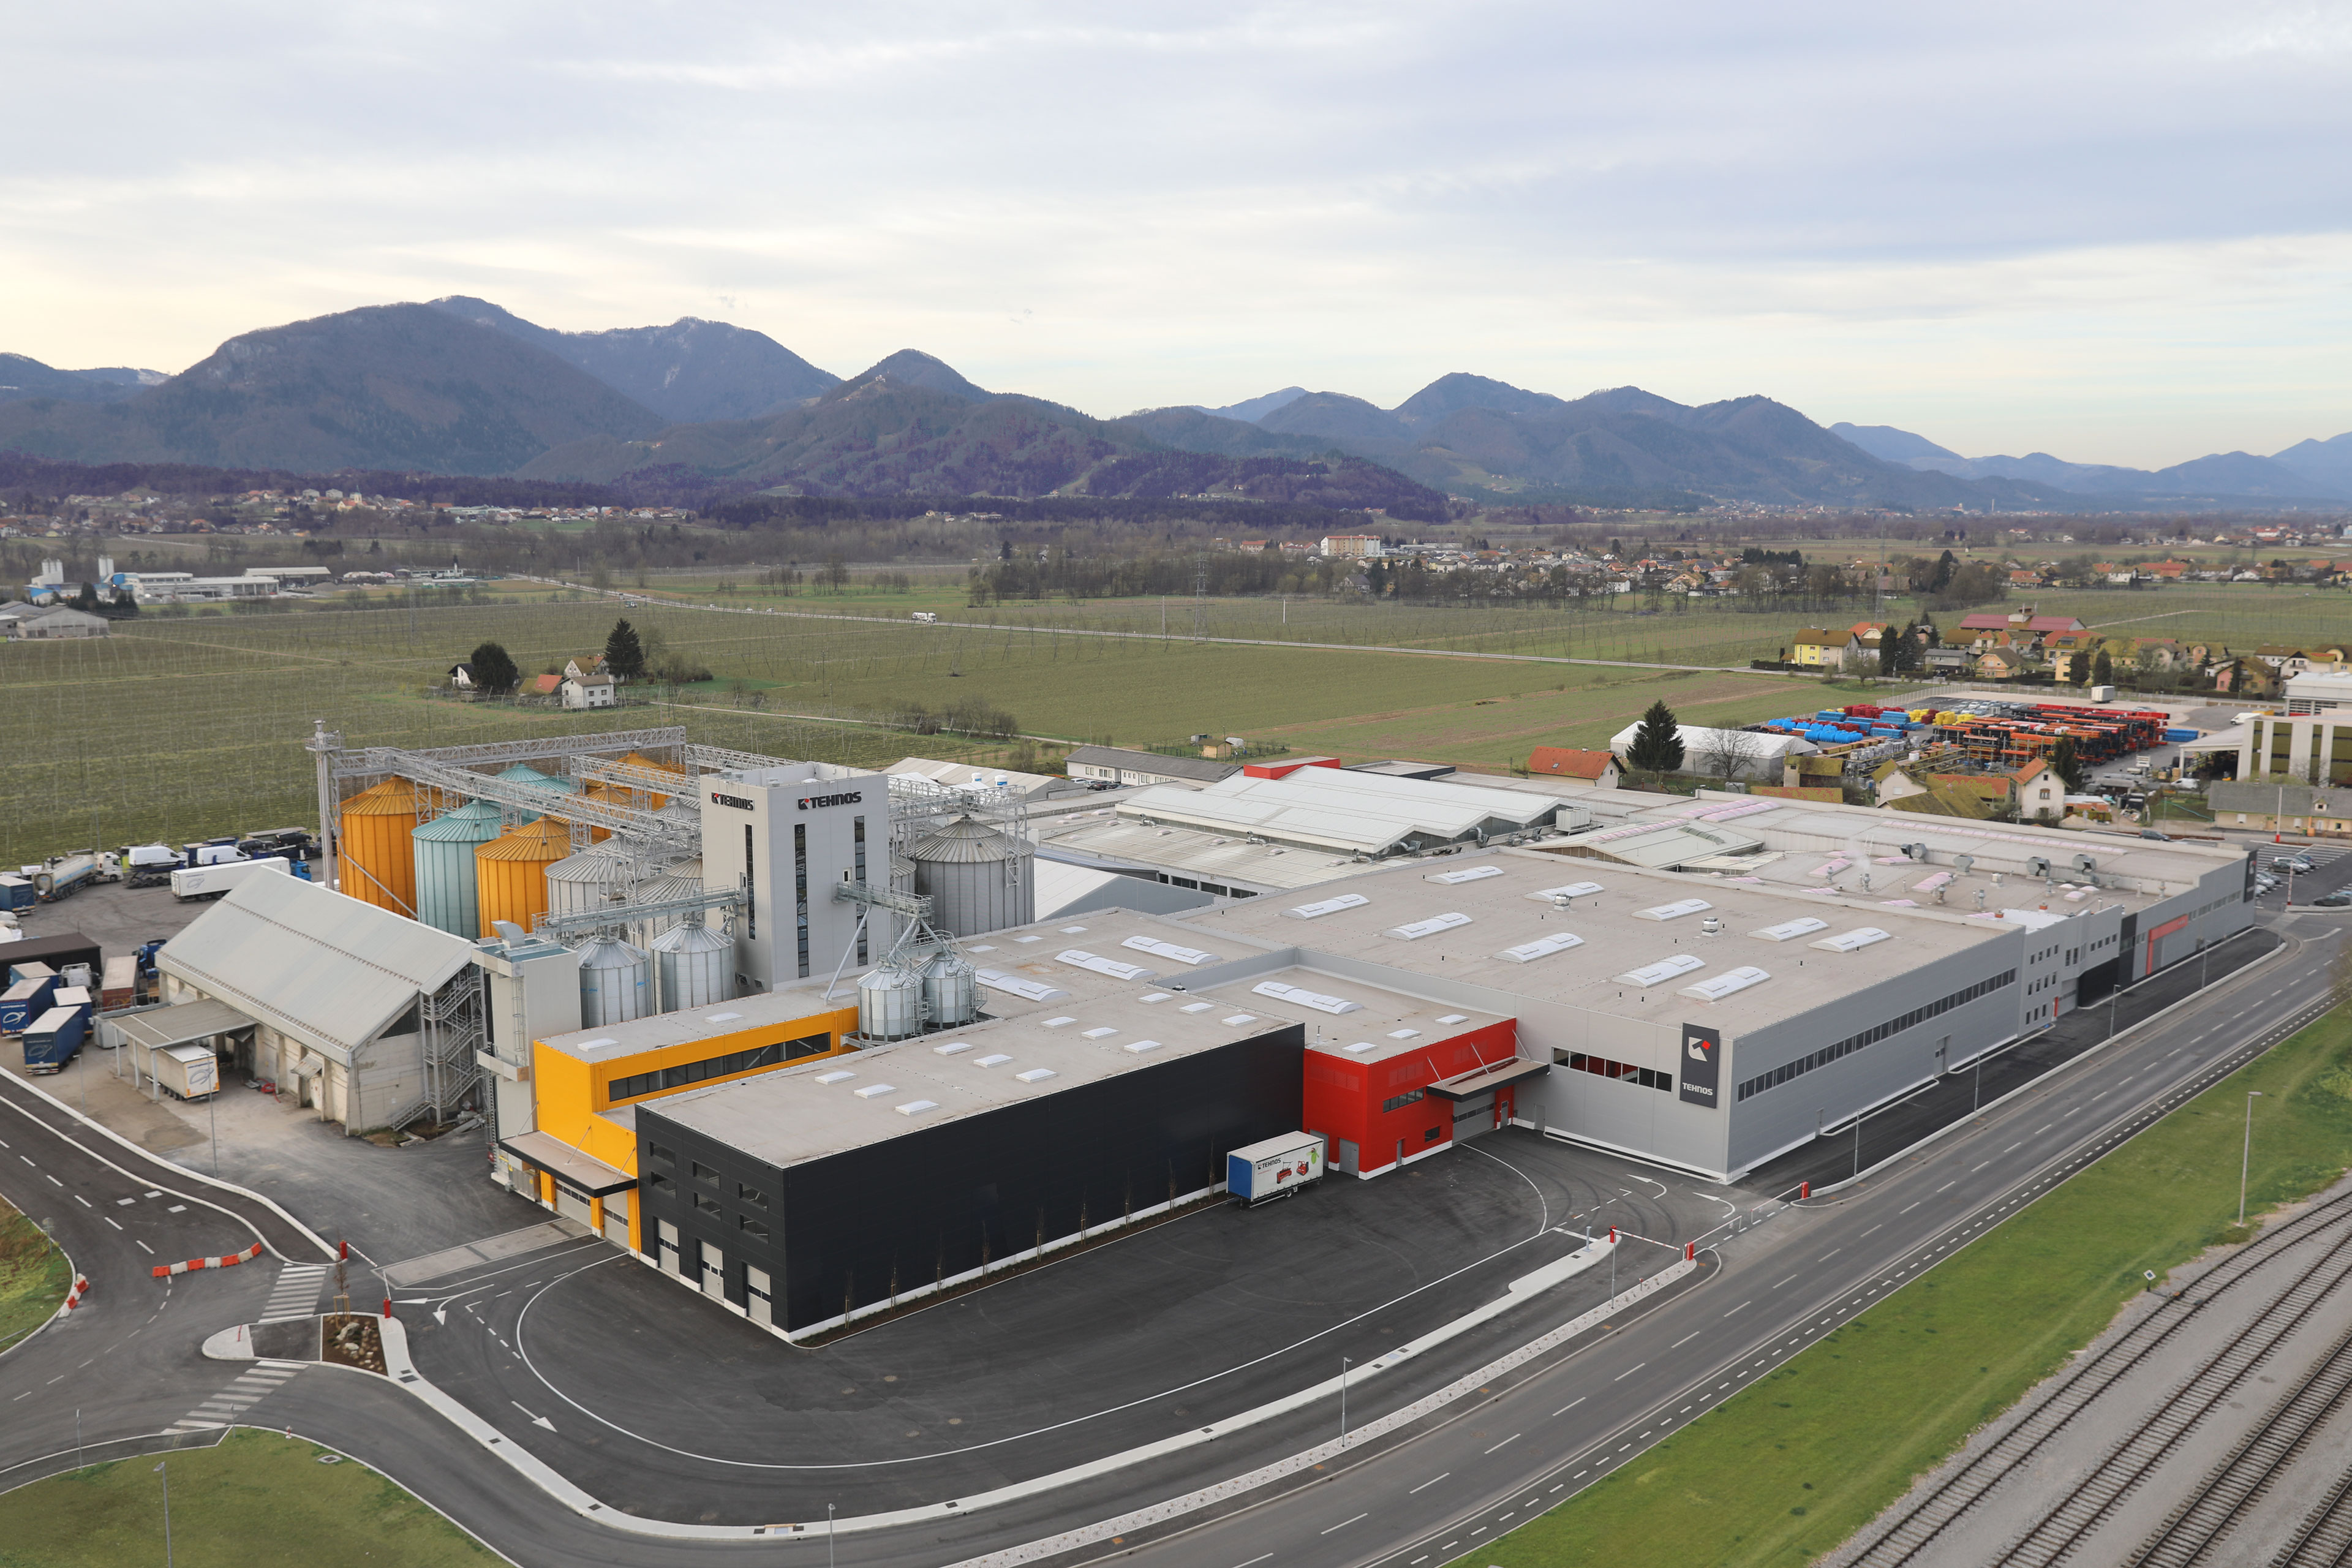 This year they have built a new, state-of-the-art warehouse